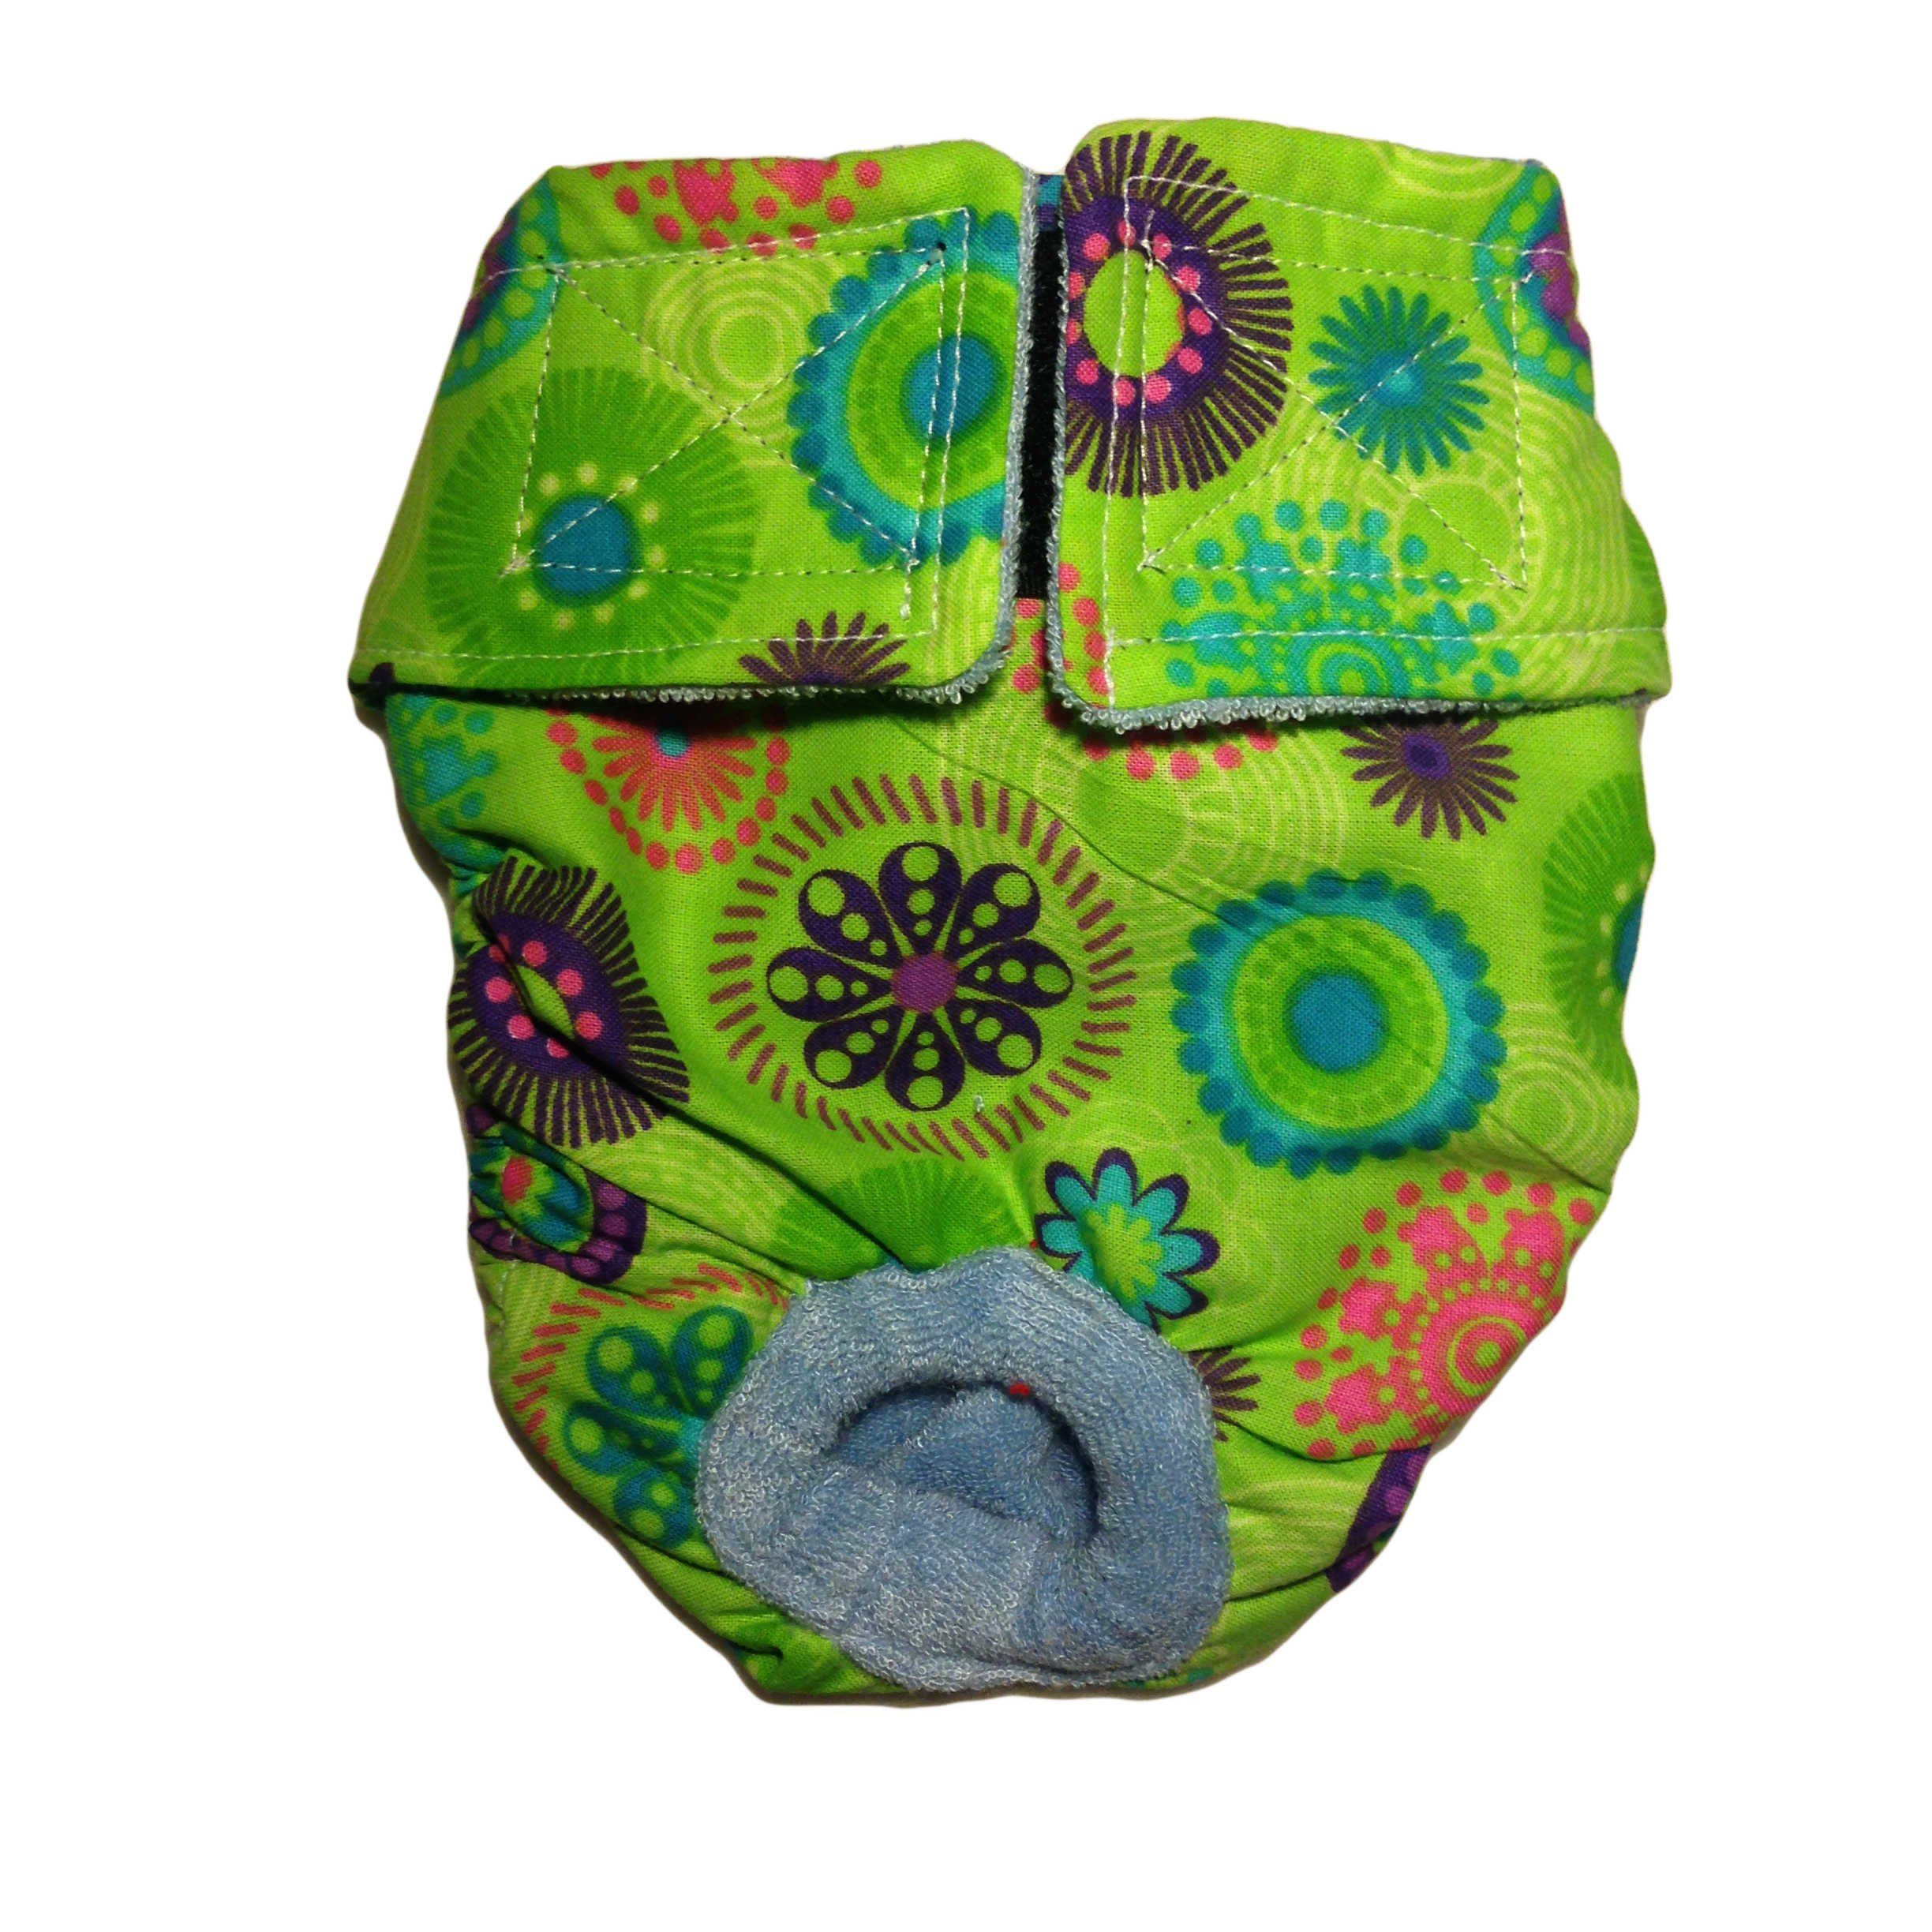 Dog Diapers Made in USA Green Kiwi Flower Washable Dog